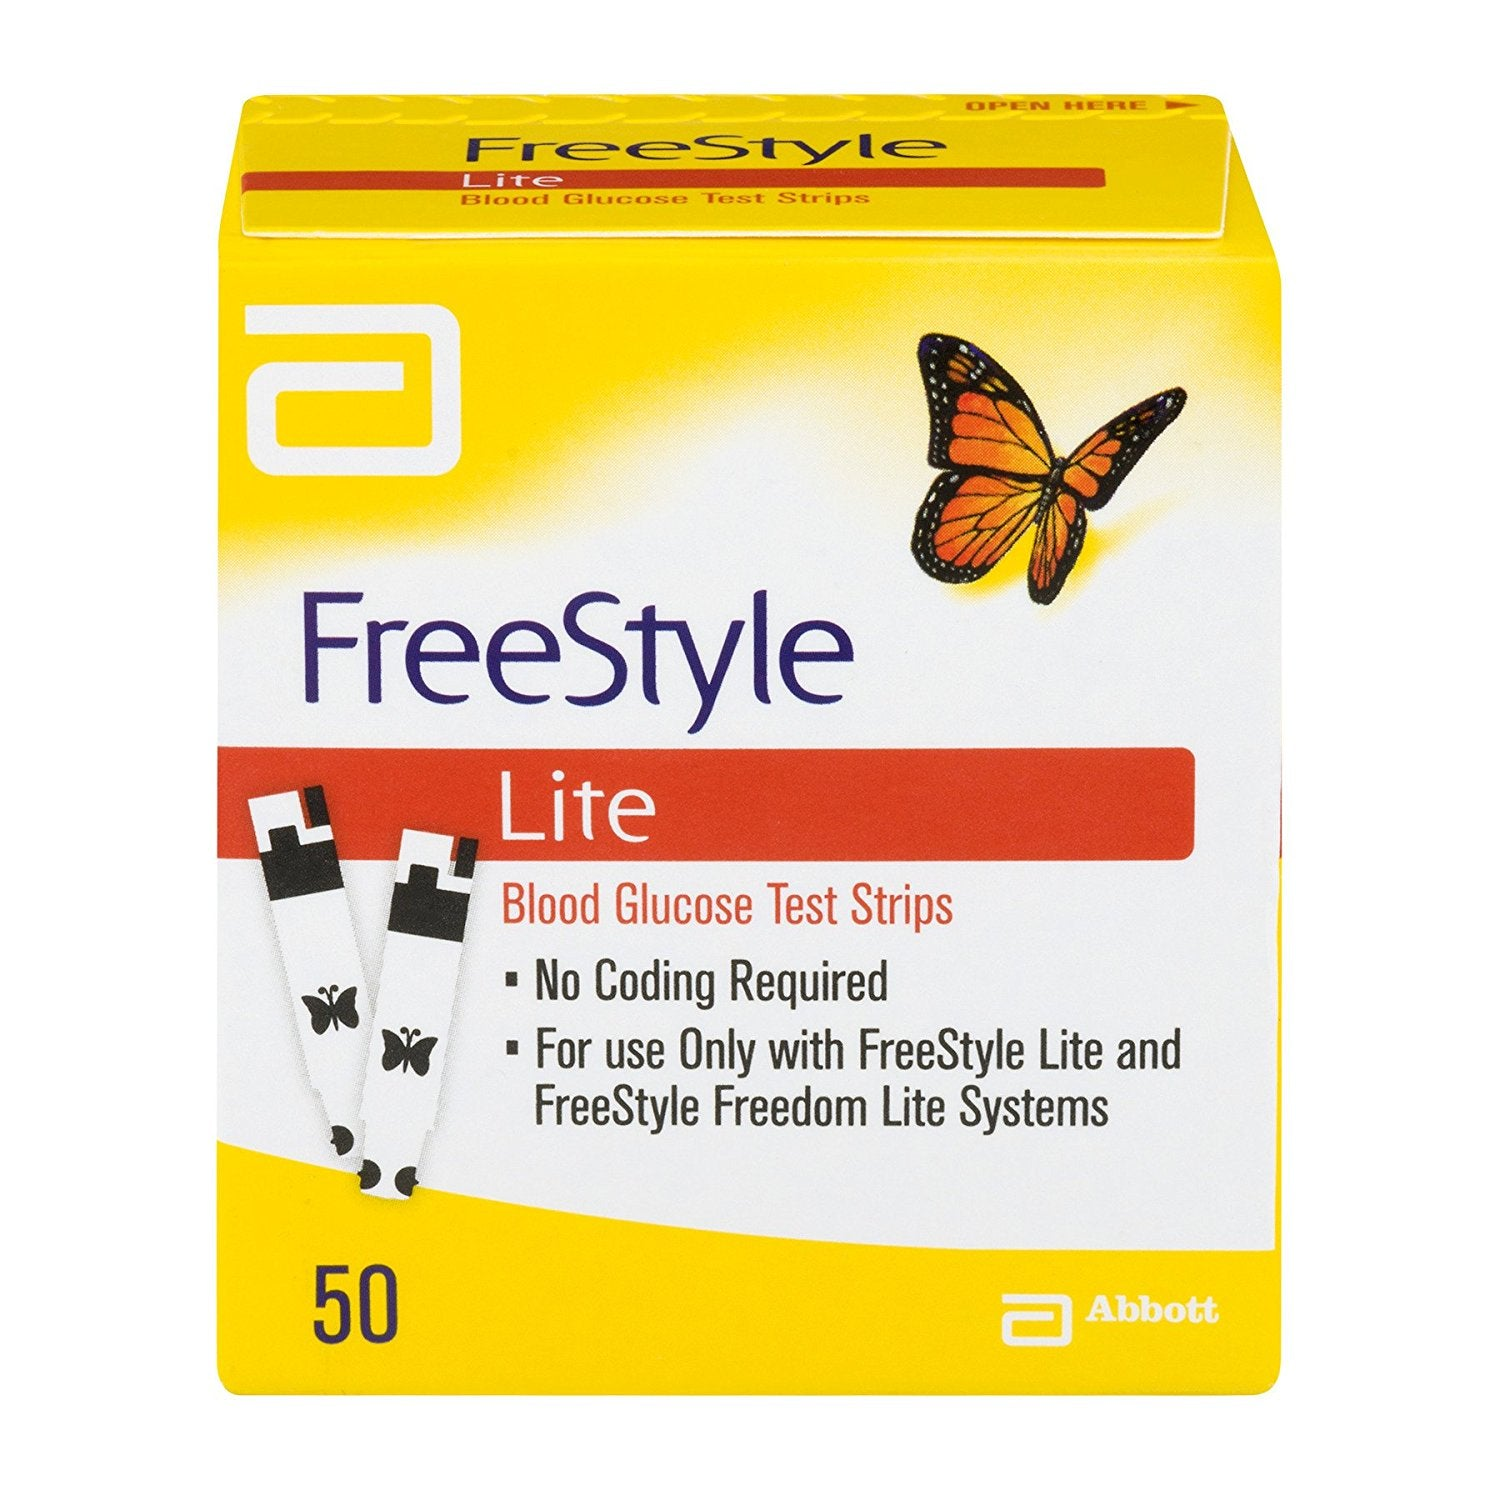 7-10 Per Day (300 FreeStyle Lite Strips)